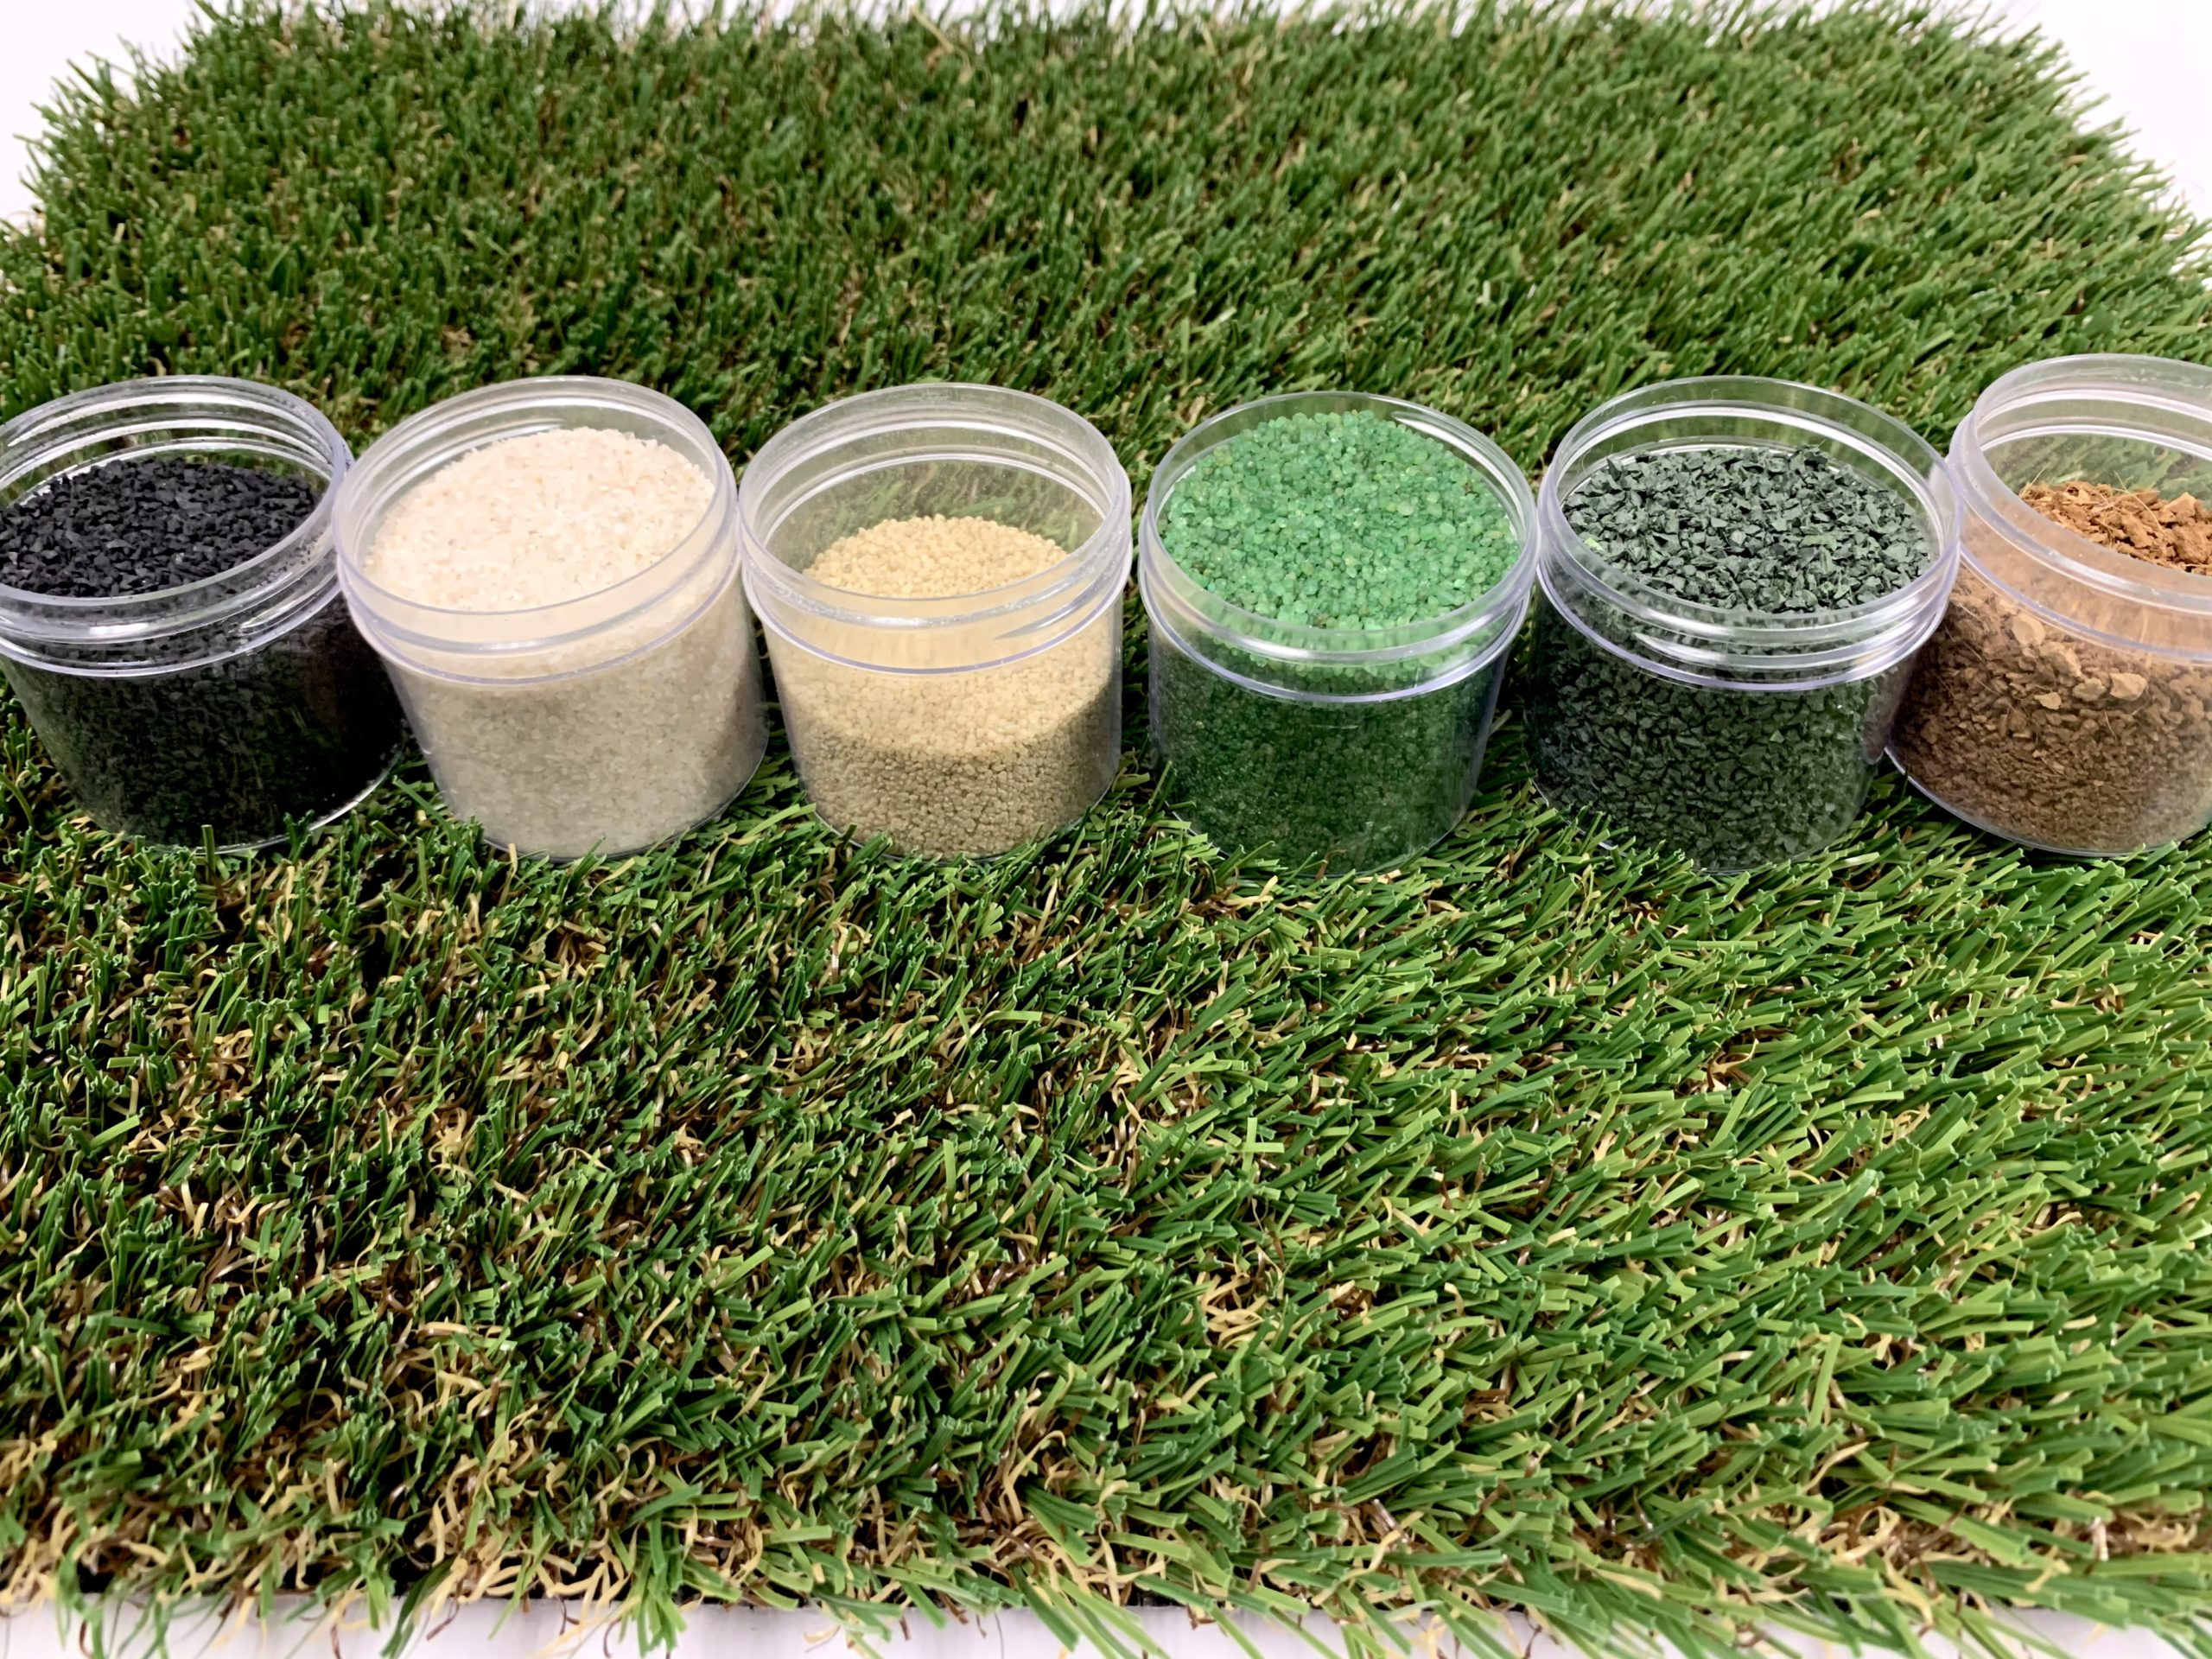 Varying types of infill in containers on turf